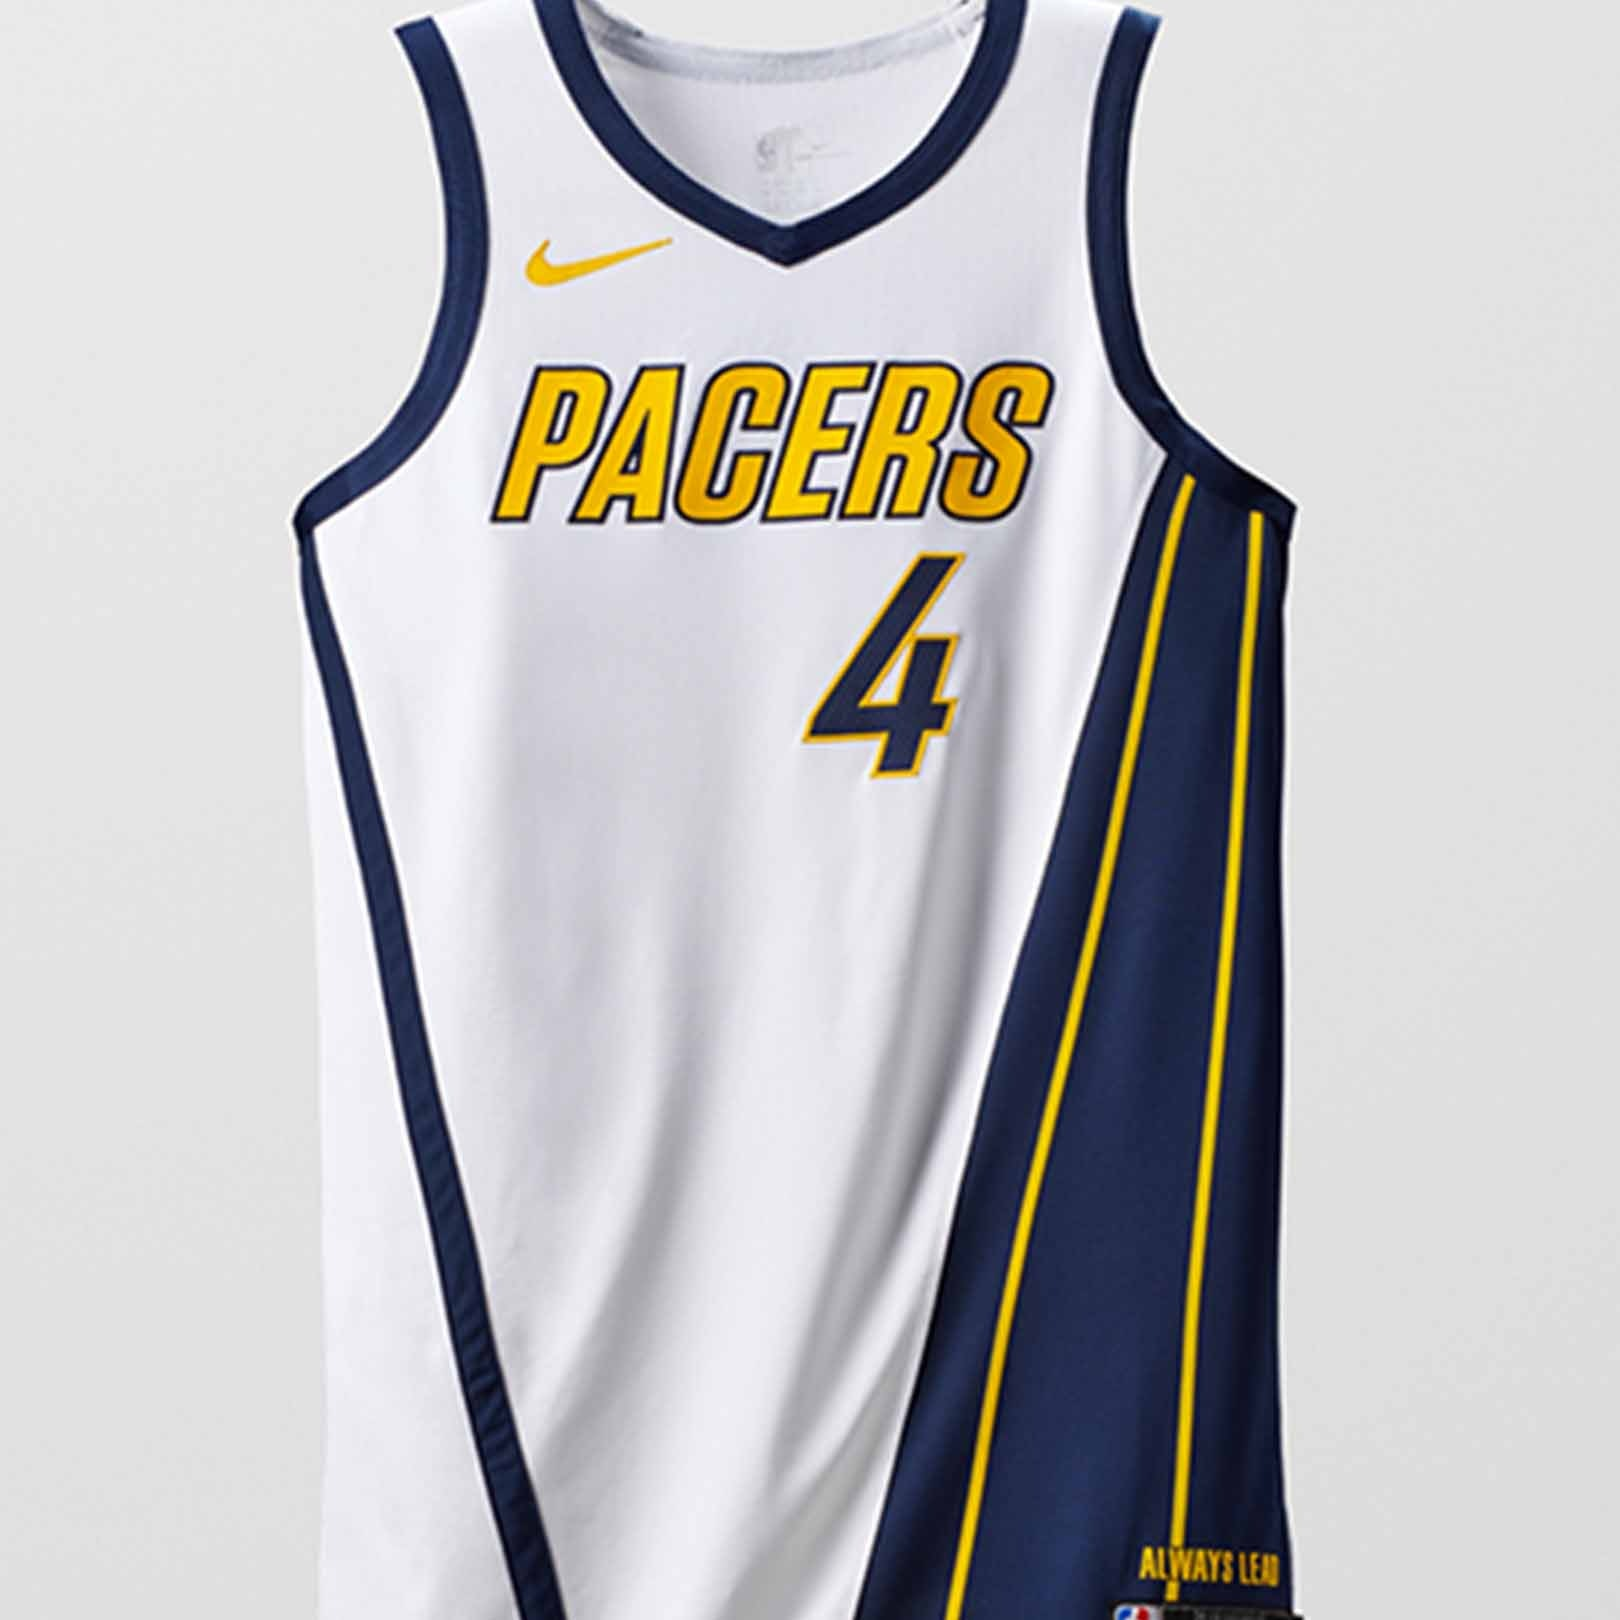 pacers instoryimage